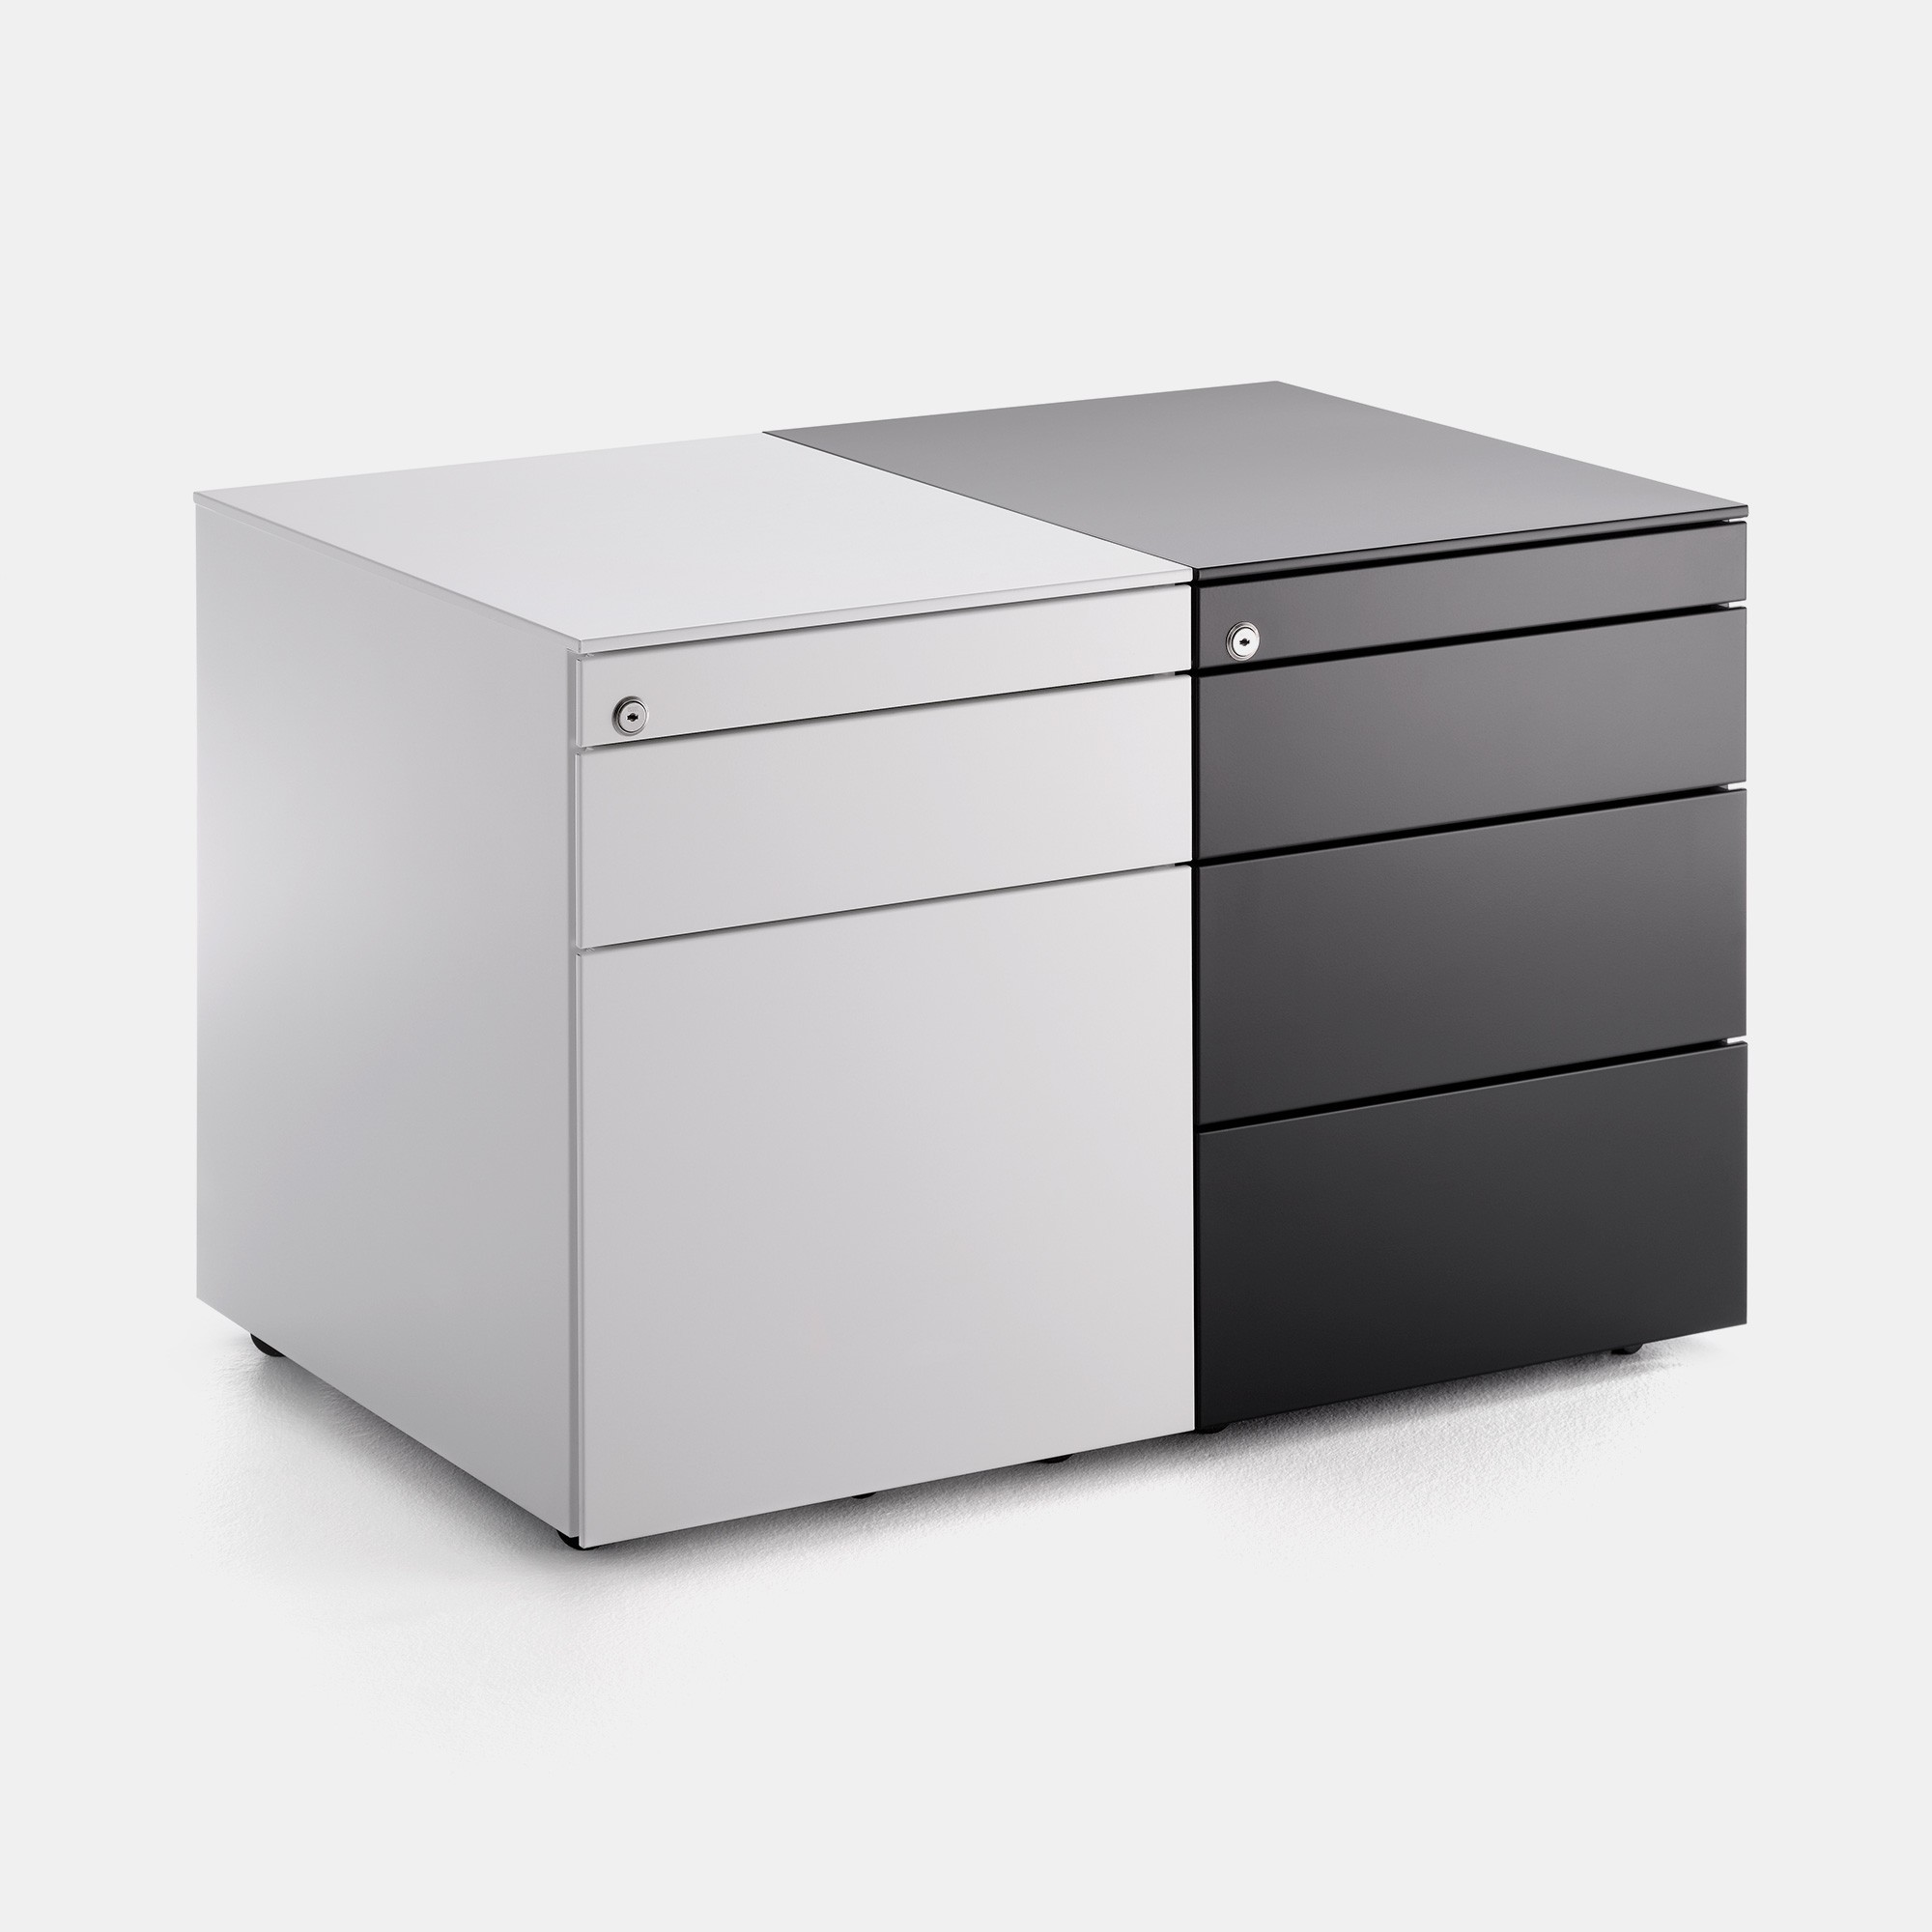 filing line drawer file product wholesale bjs undefined espresso designs profileid club recipeid vertical imageservice z id cabinet